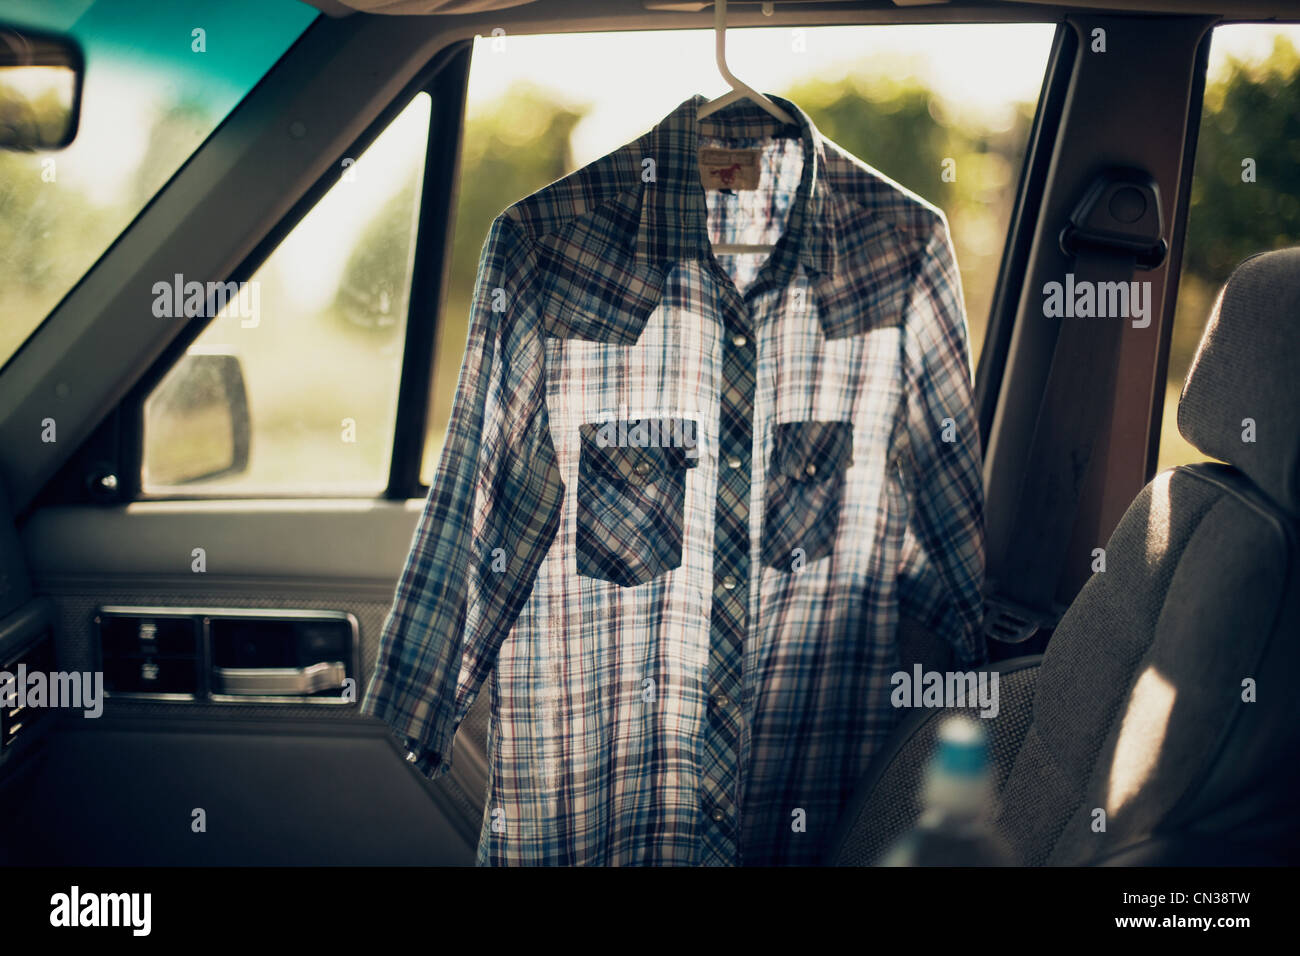 Checkered shirt in a car - Stock Image